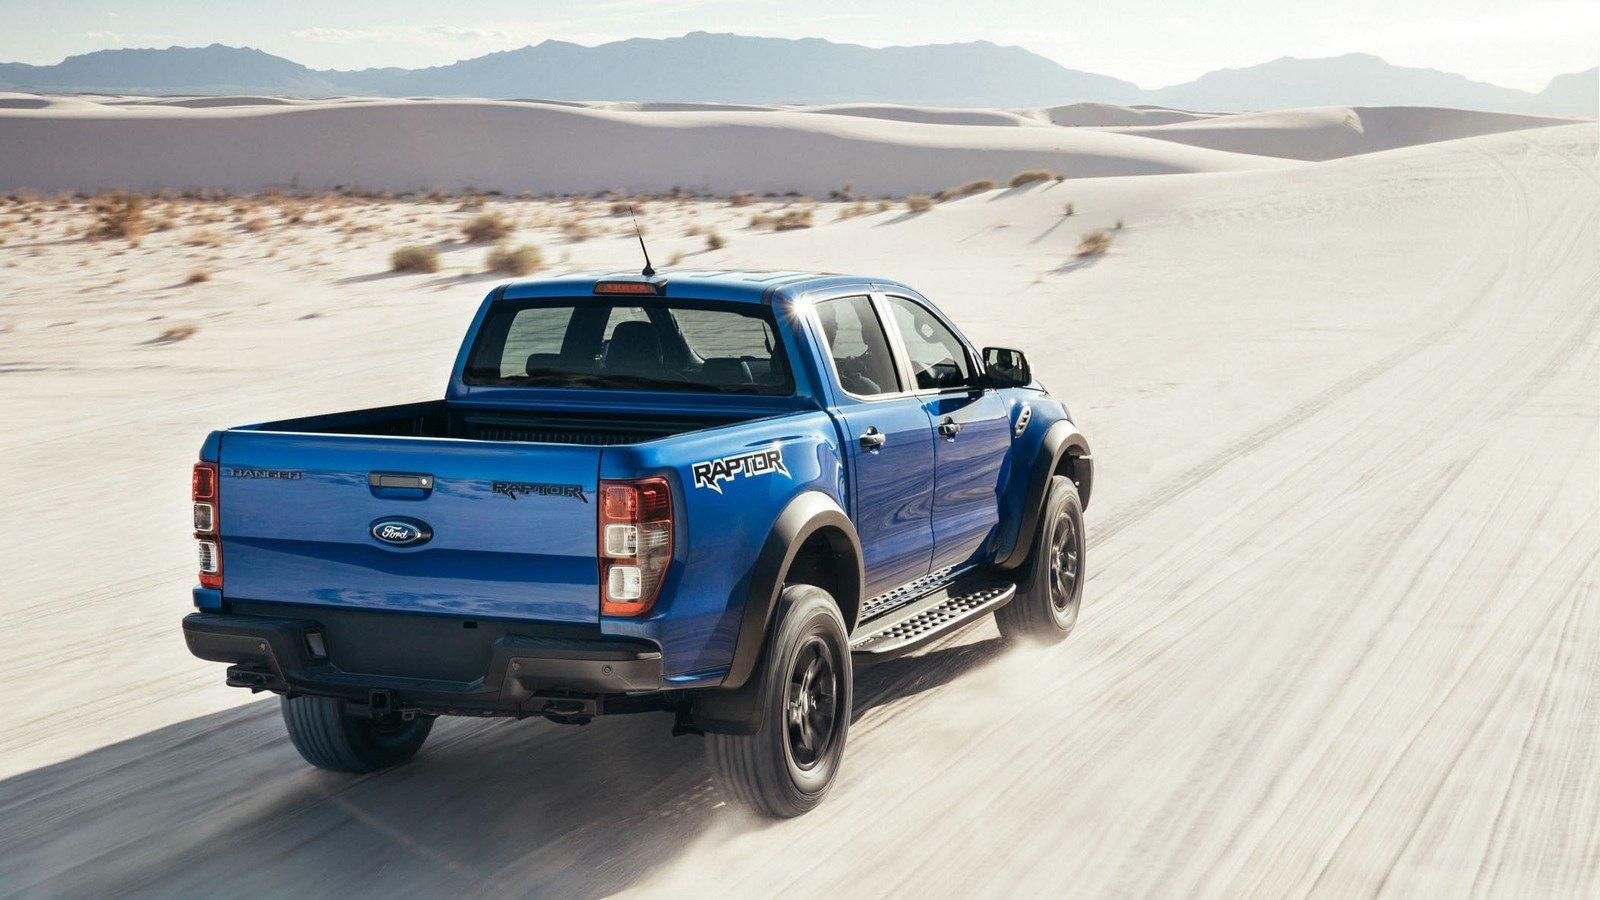 This Is It! Meet The 2019 Ford Ranger Raptor! Pictures, Photos